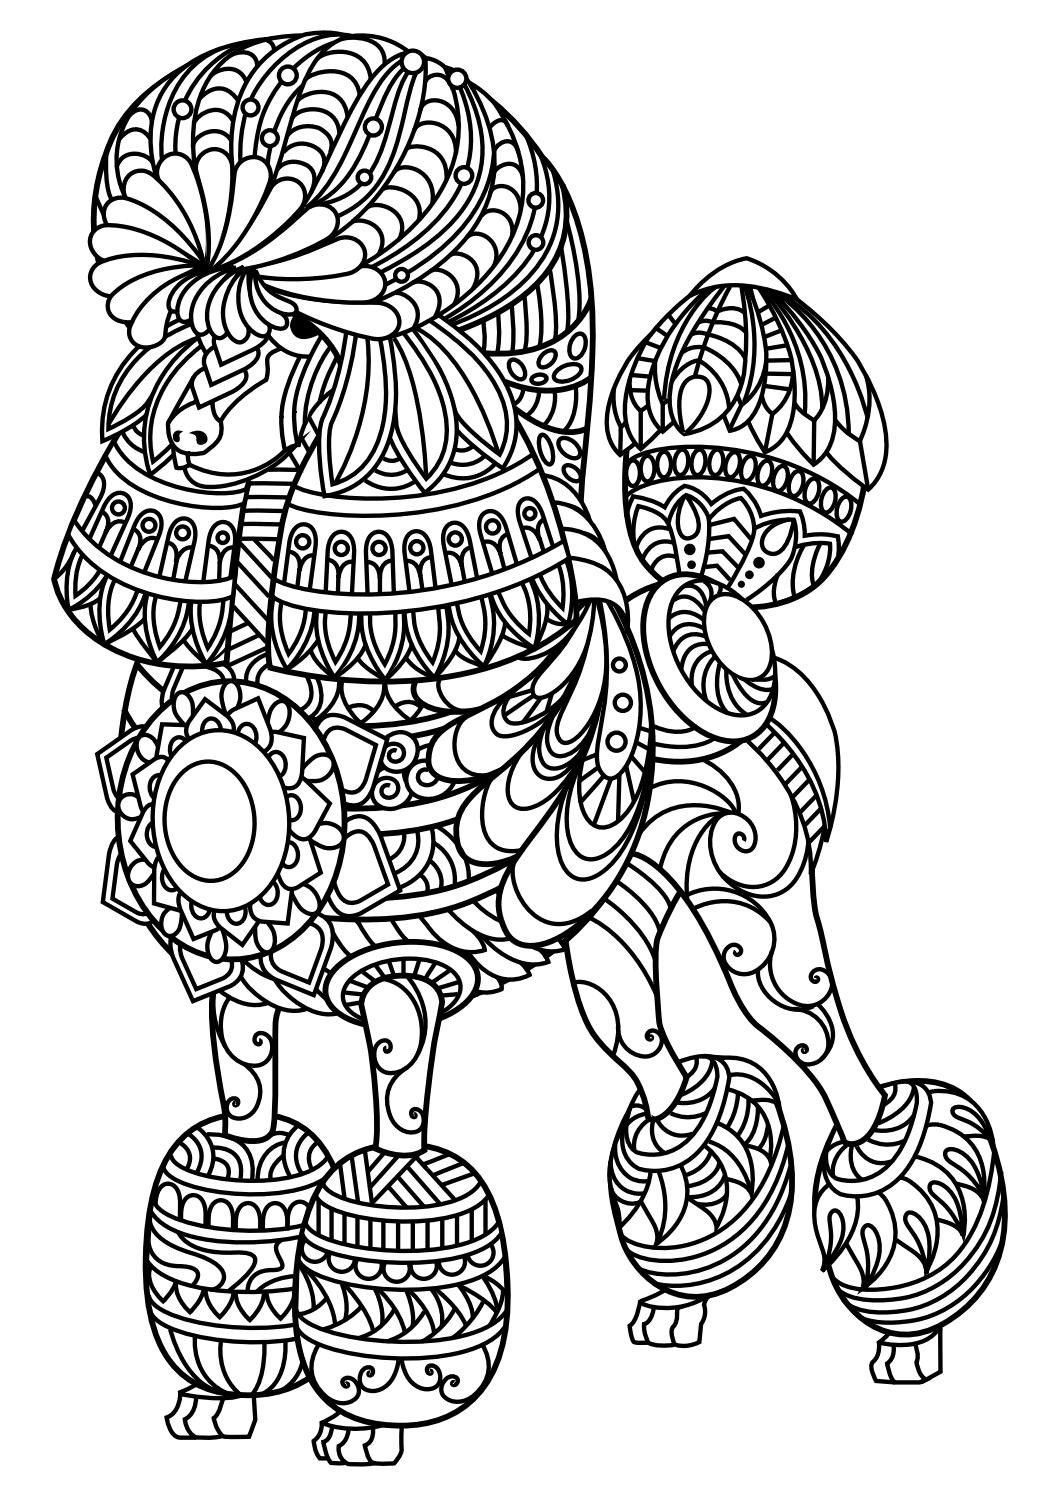 20 Awesome Farm Animal Coloring Pages Animal coloring